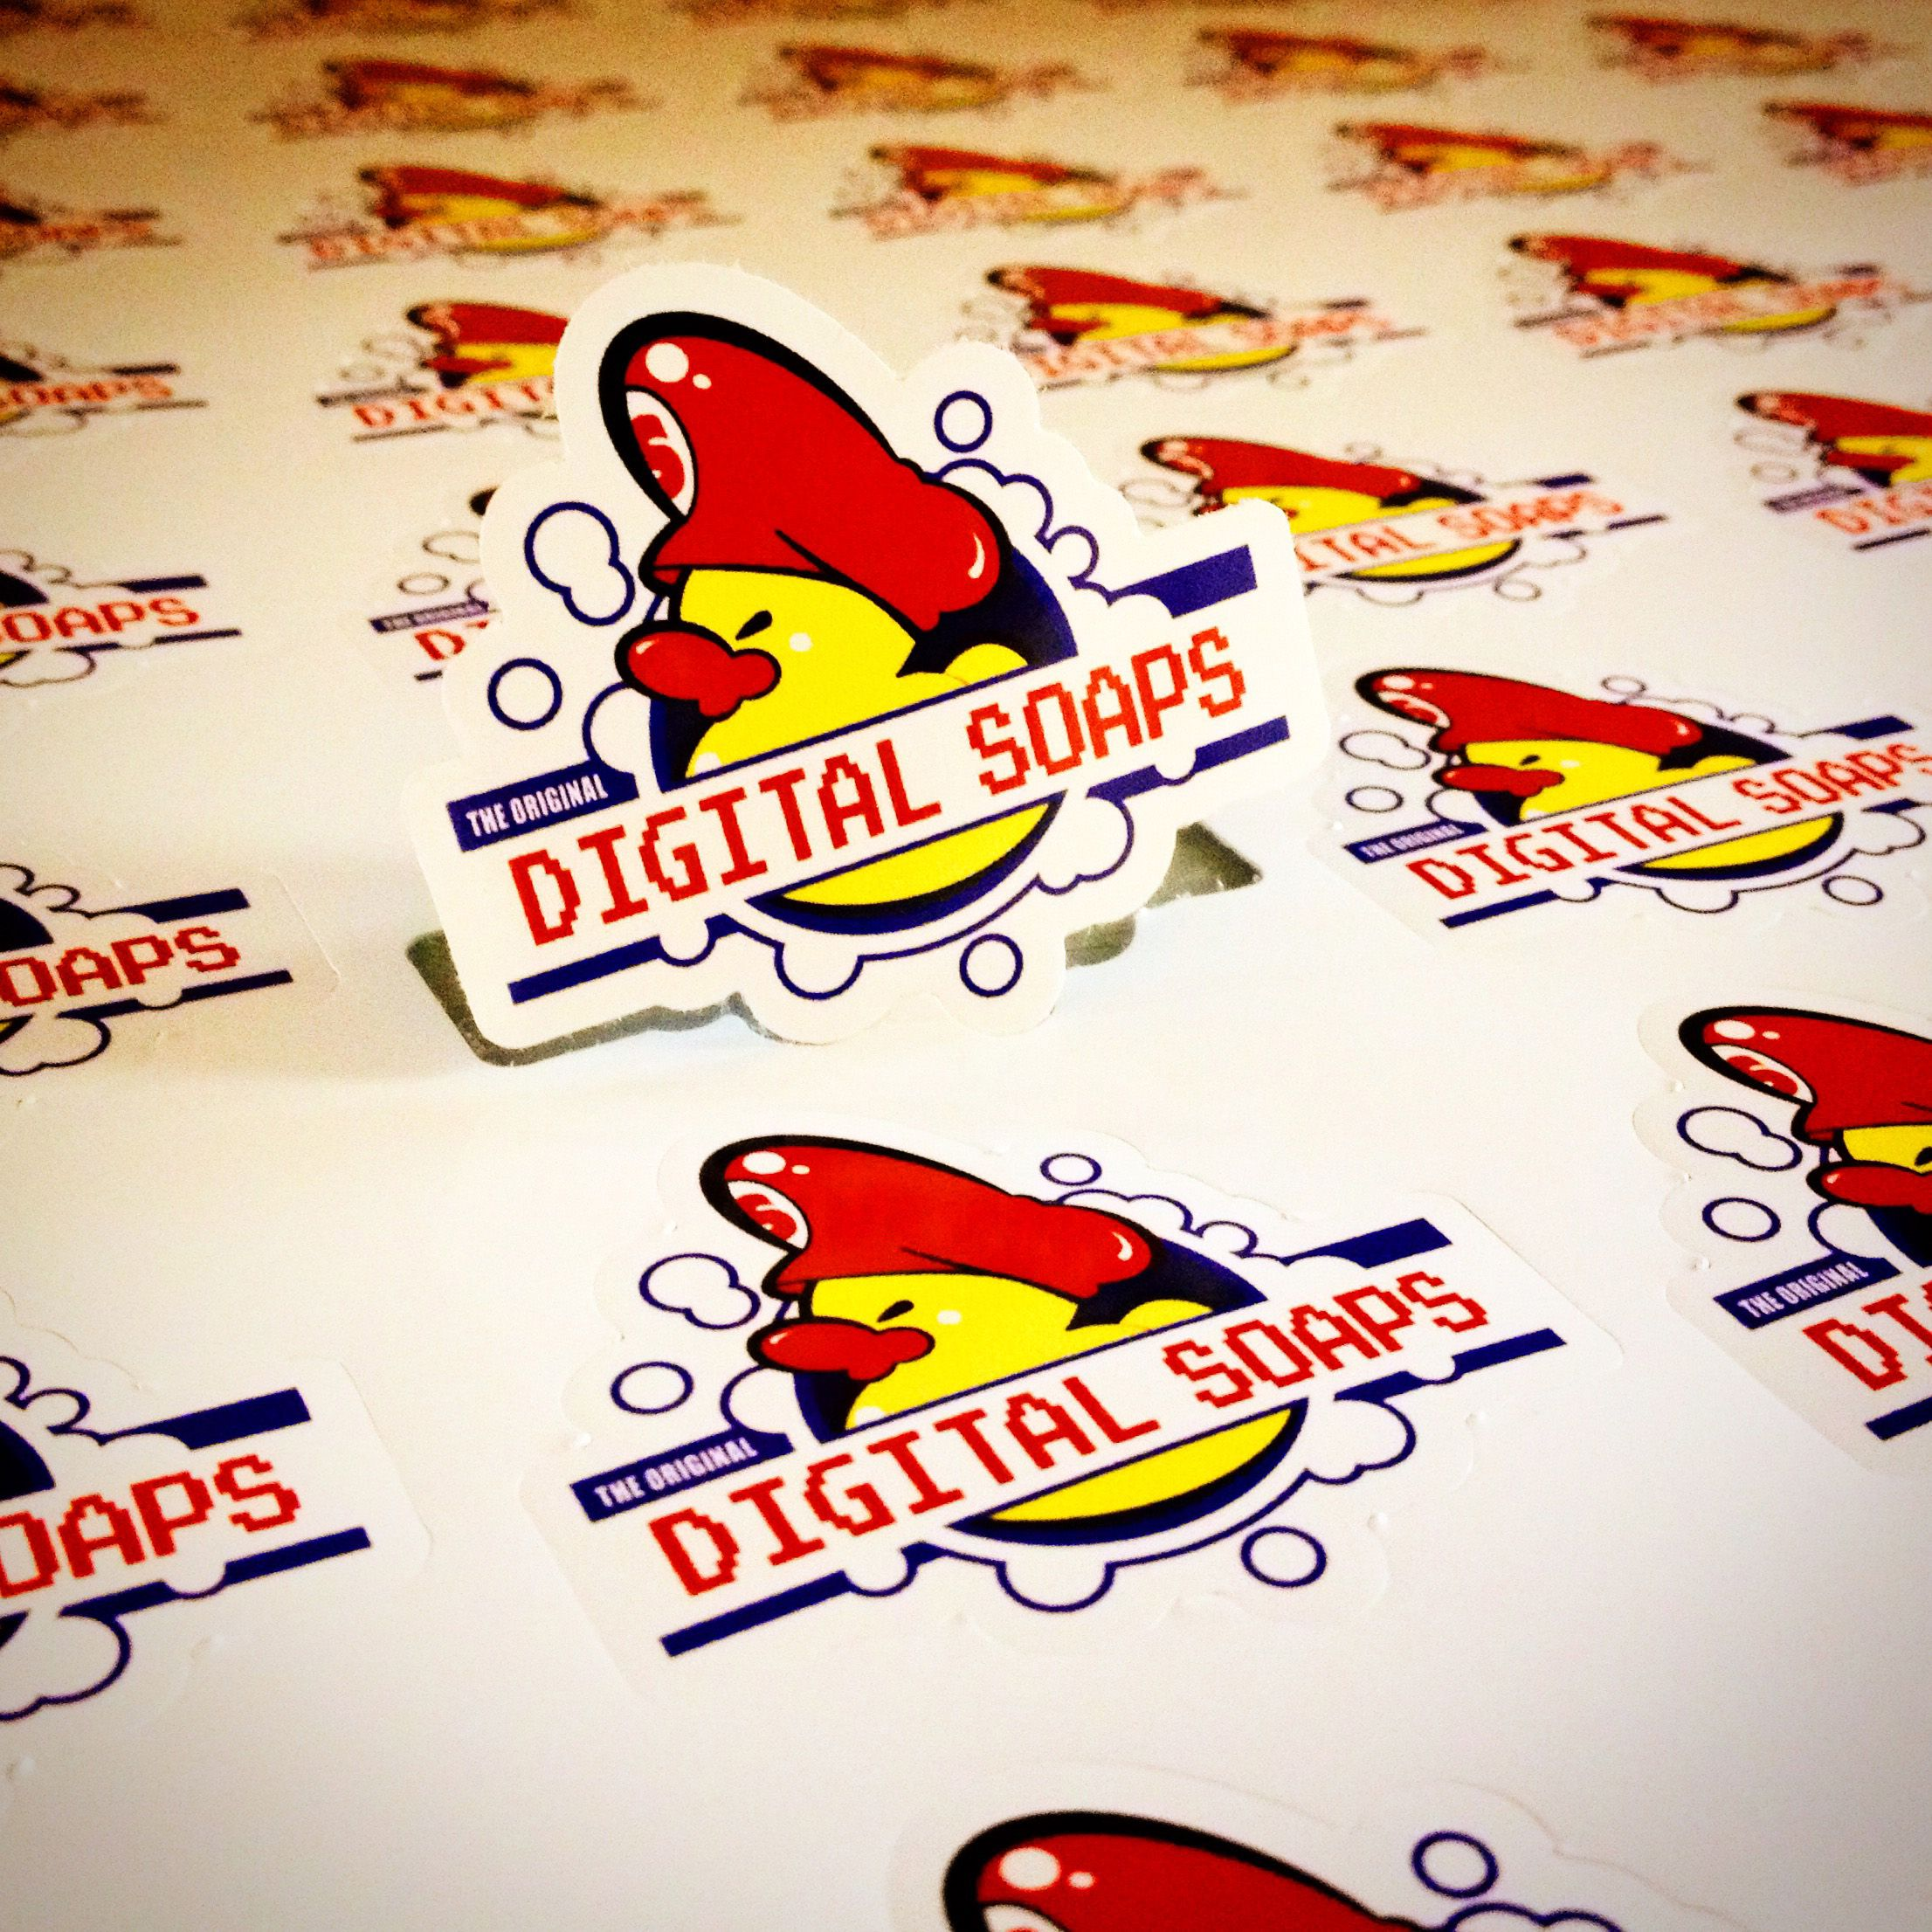 Digital soaps logo stickers custom die cut with a white border printed on outdoor vinyl